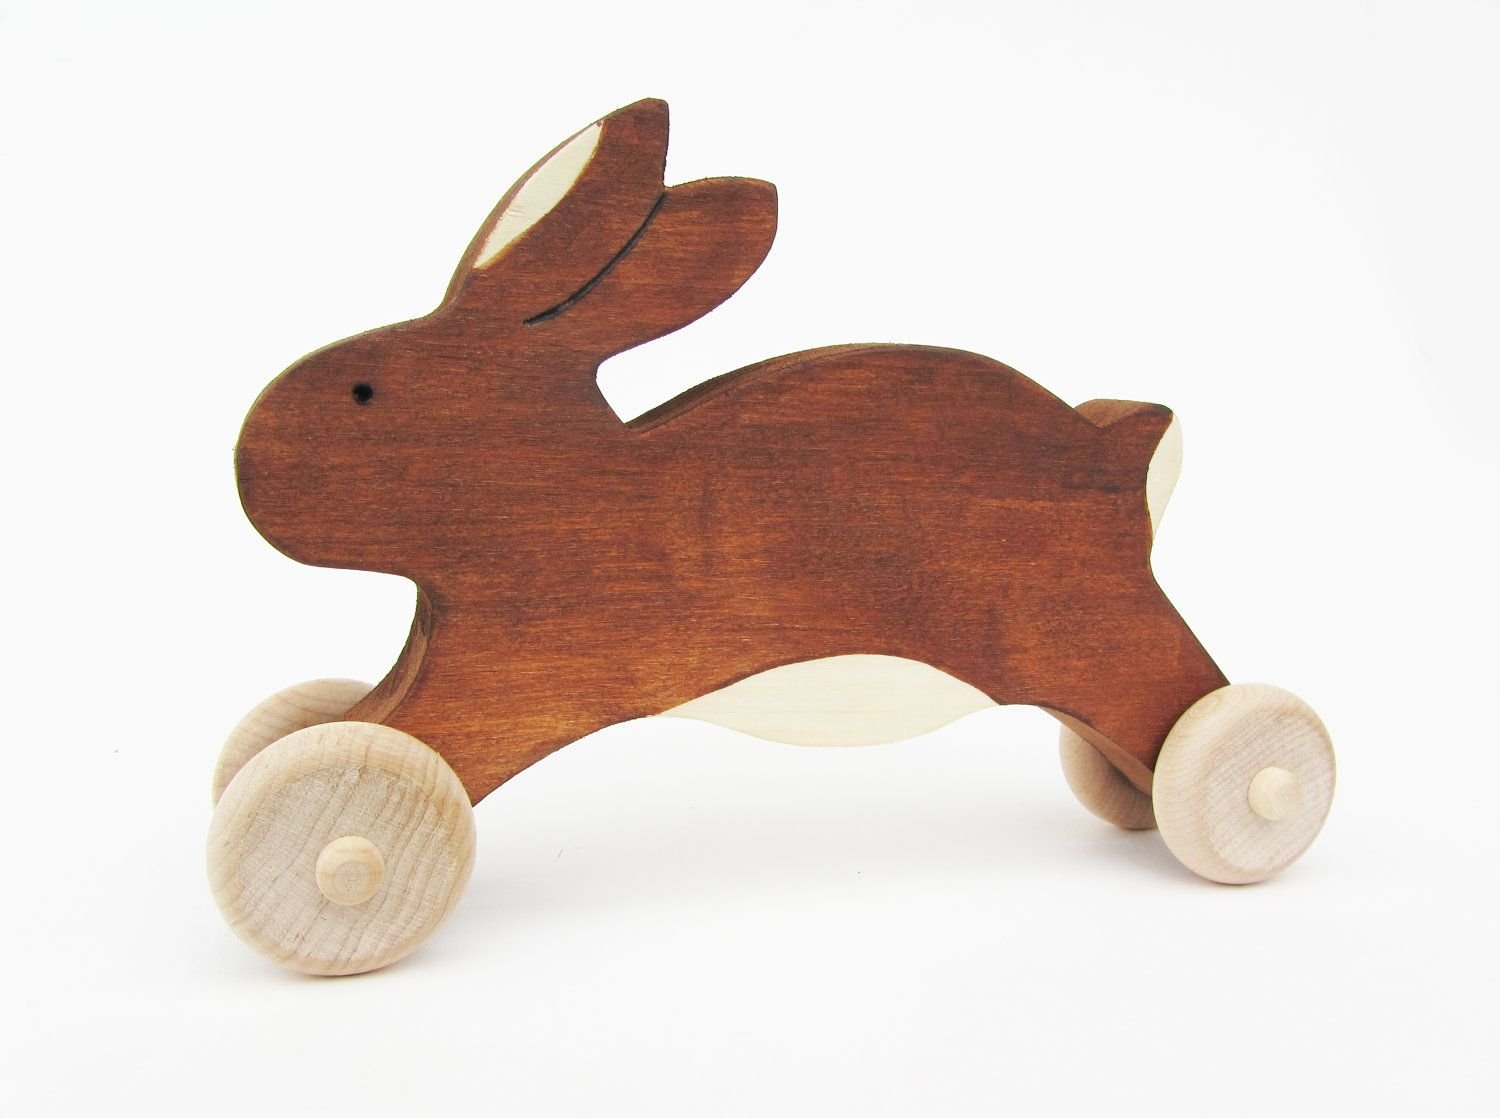 Wooden easter bunny toy easter rabbit gift eco friendly natural wooden easter bunny toy easter rabbit gift eco friendly natural kids 1500 negle Gallery